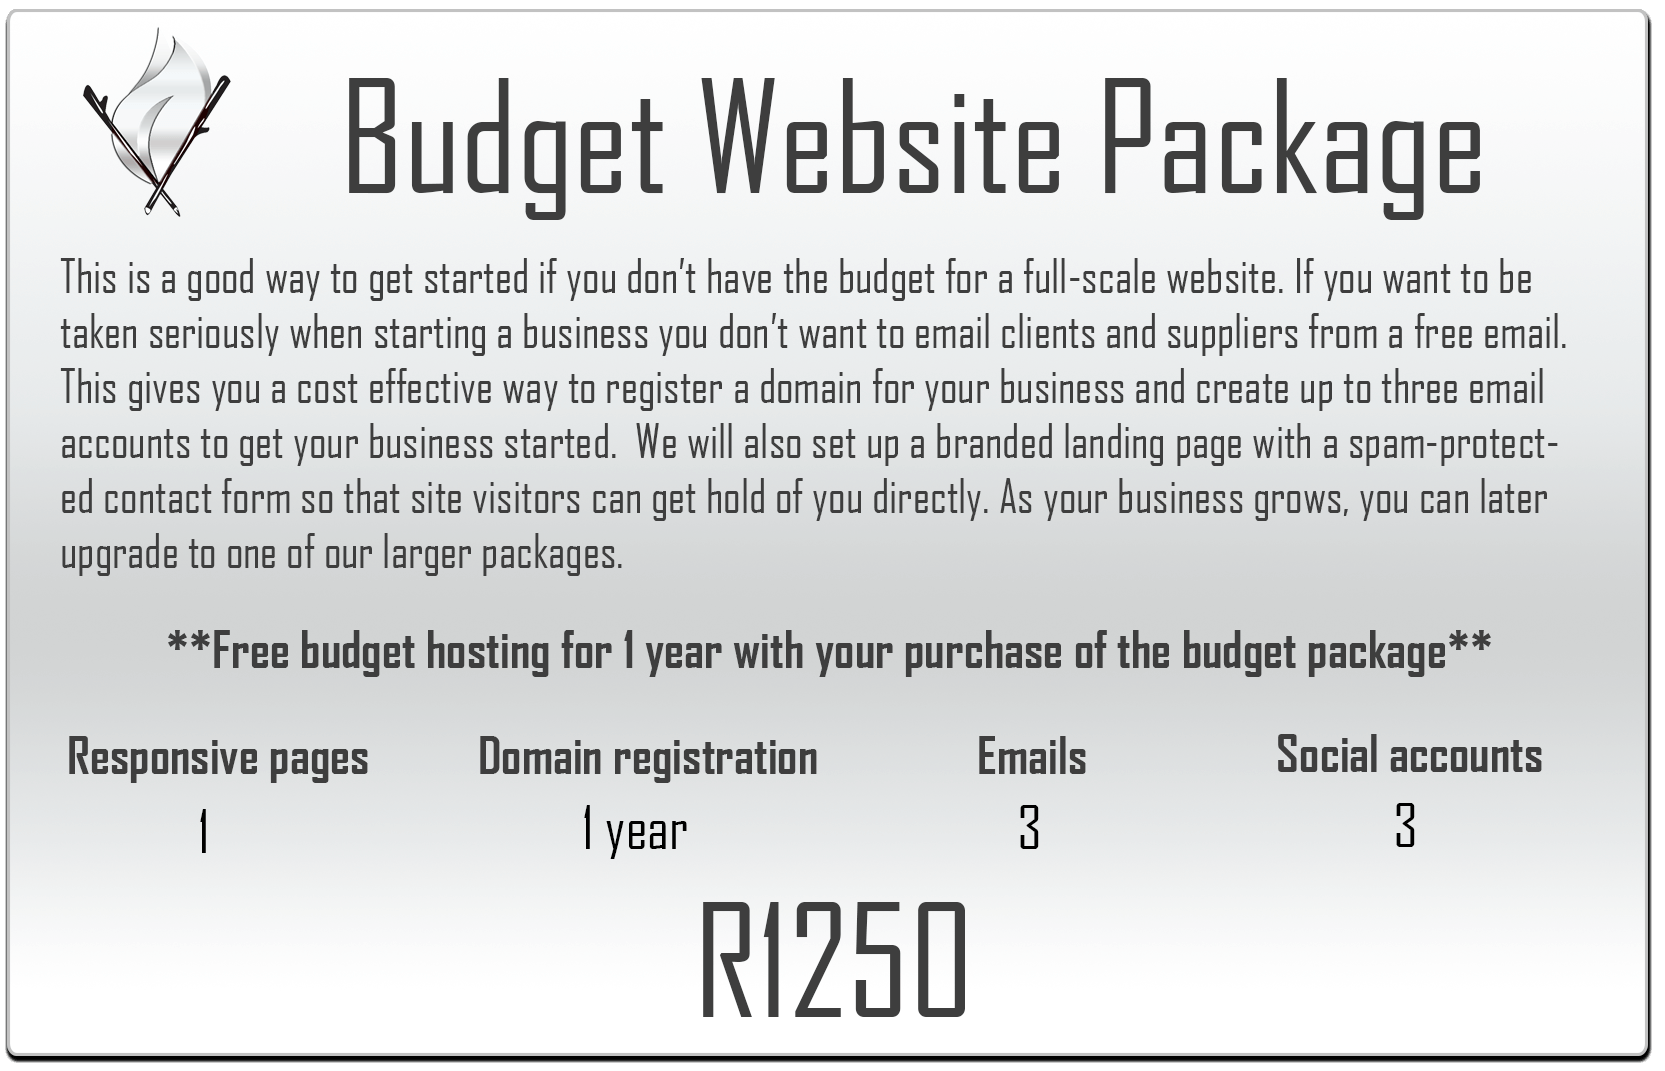 Budget website package